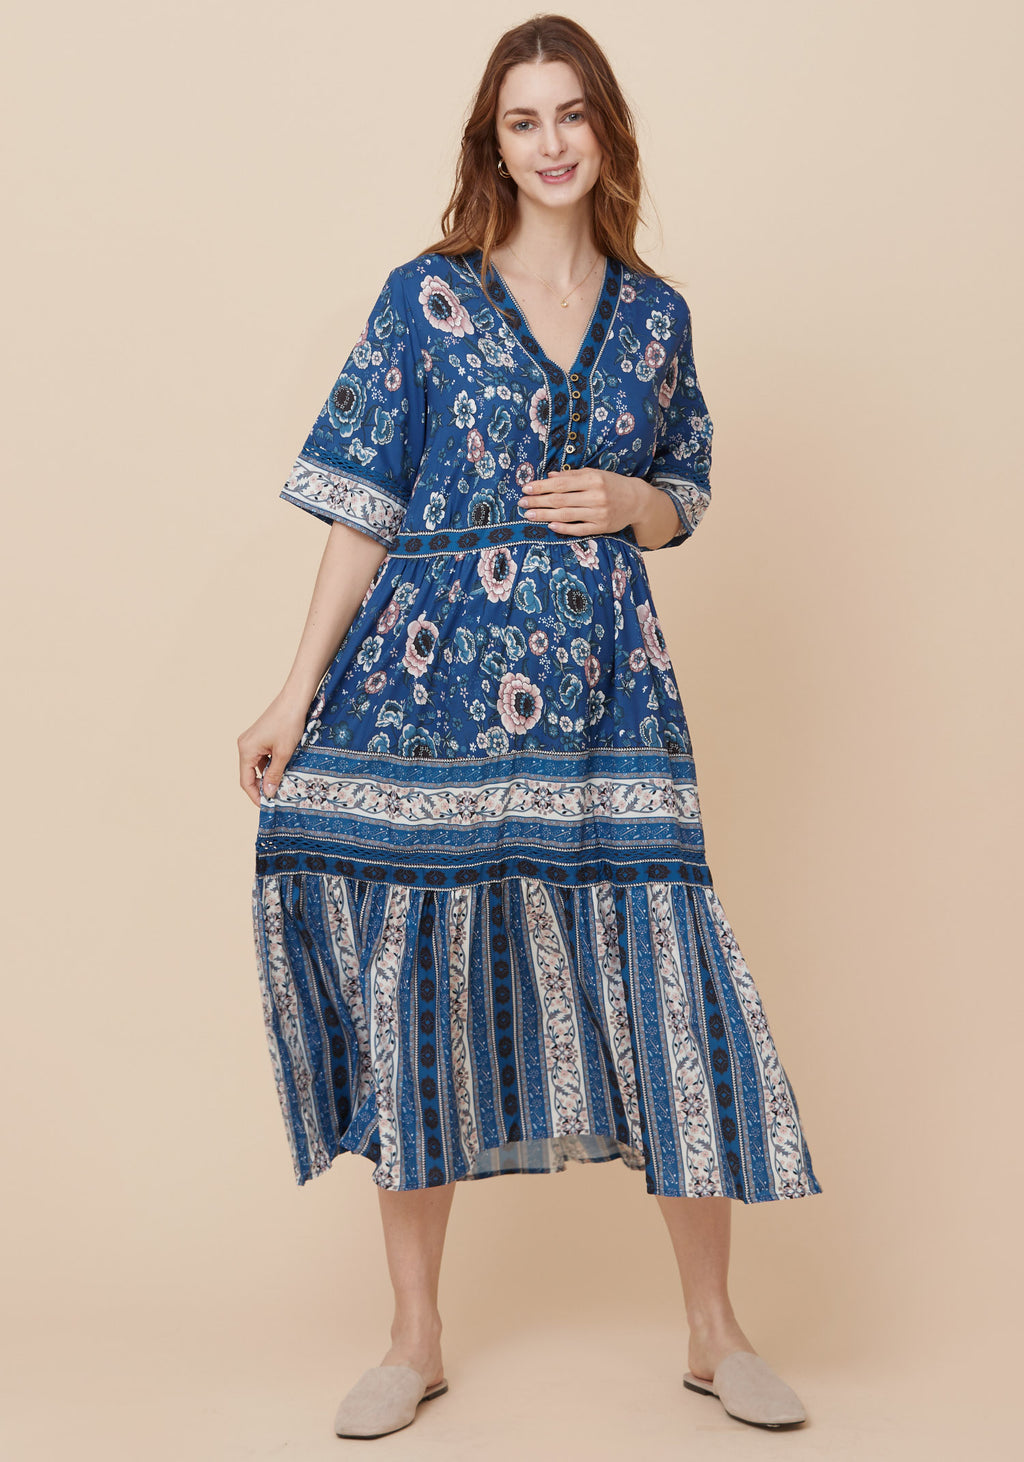 AERI CREPE DRESS